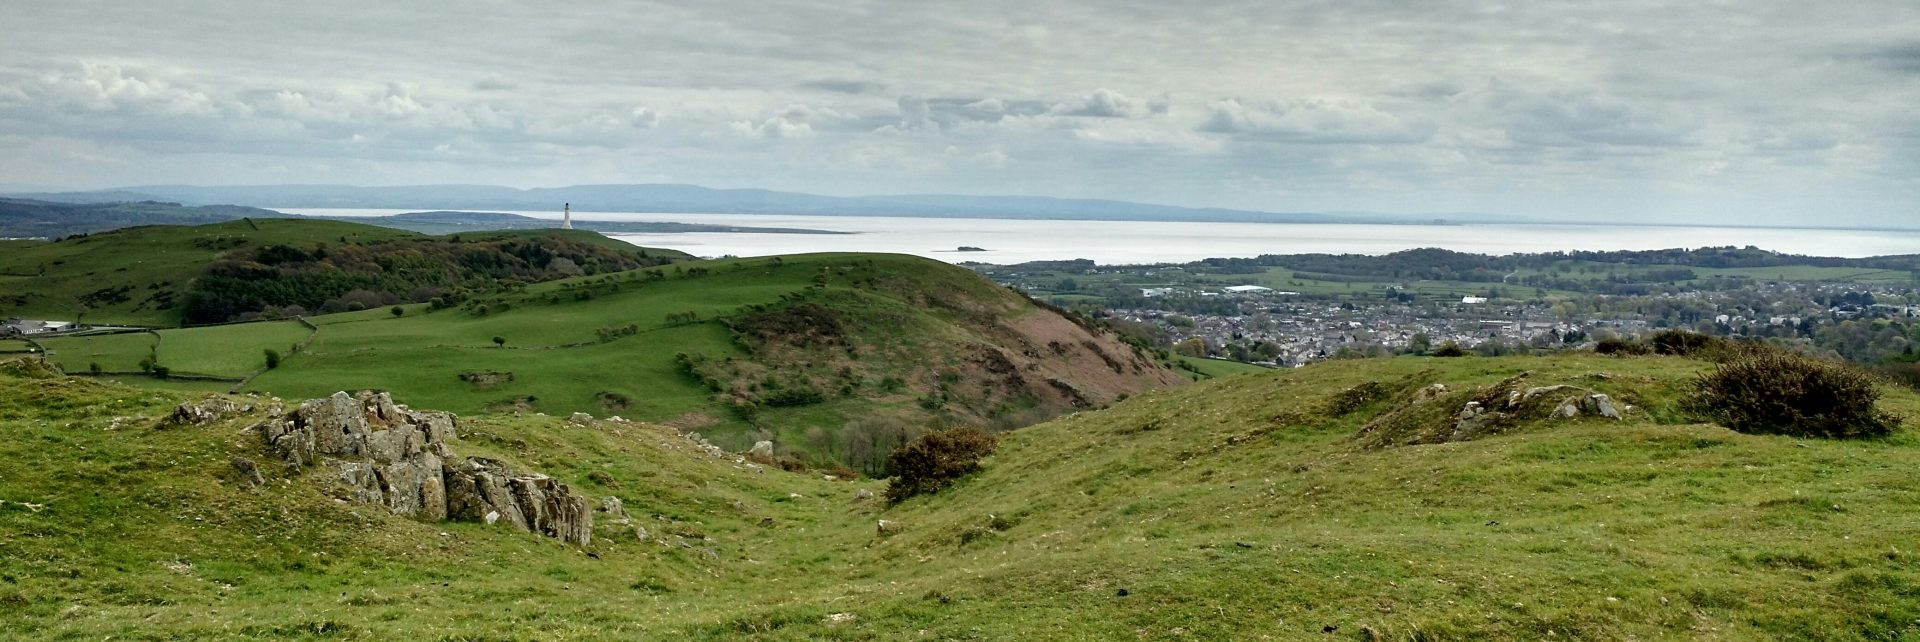 View to Ulverston and the Sea